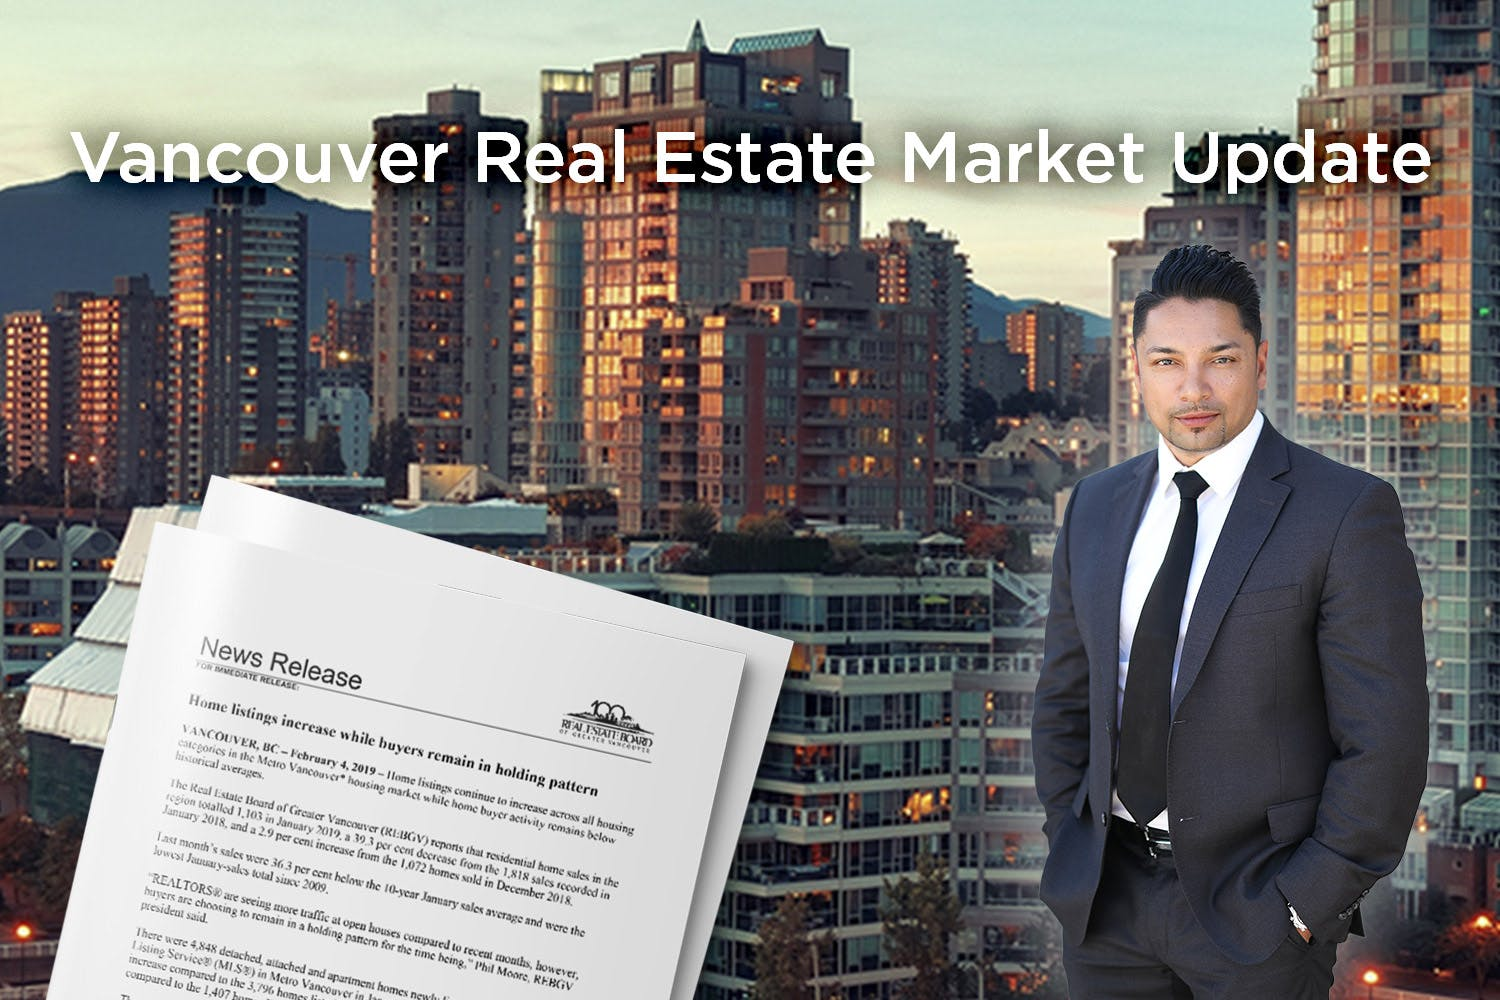 Imran Ali Vancouver Real Estate Report